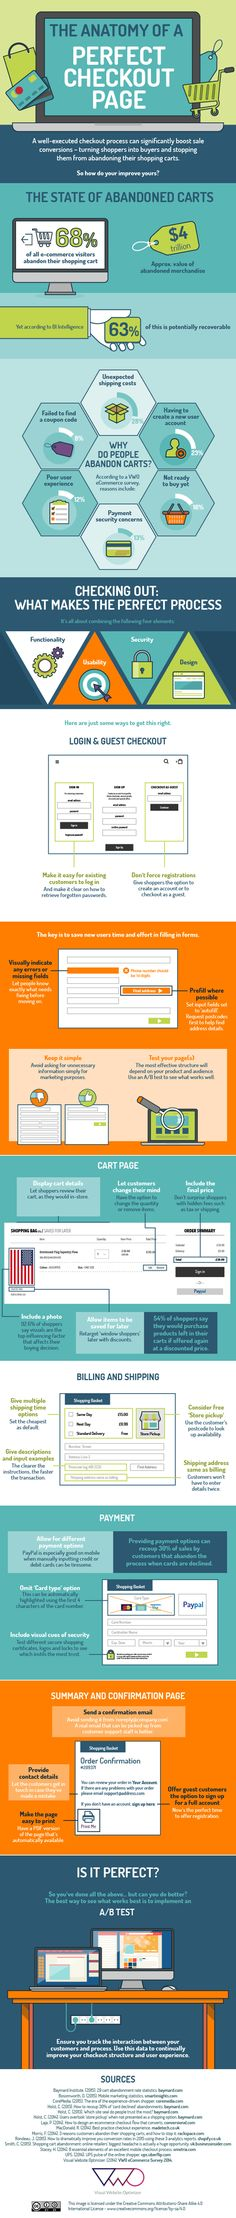 Selling Products Online? How to Build a Perfect Checkout Page (Infographic) #ecommerce #checkout #perfectcheckout